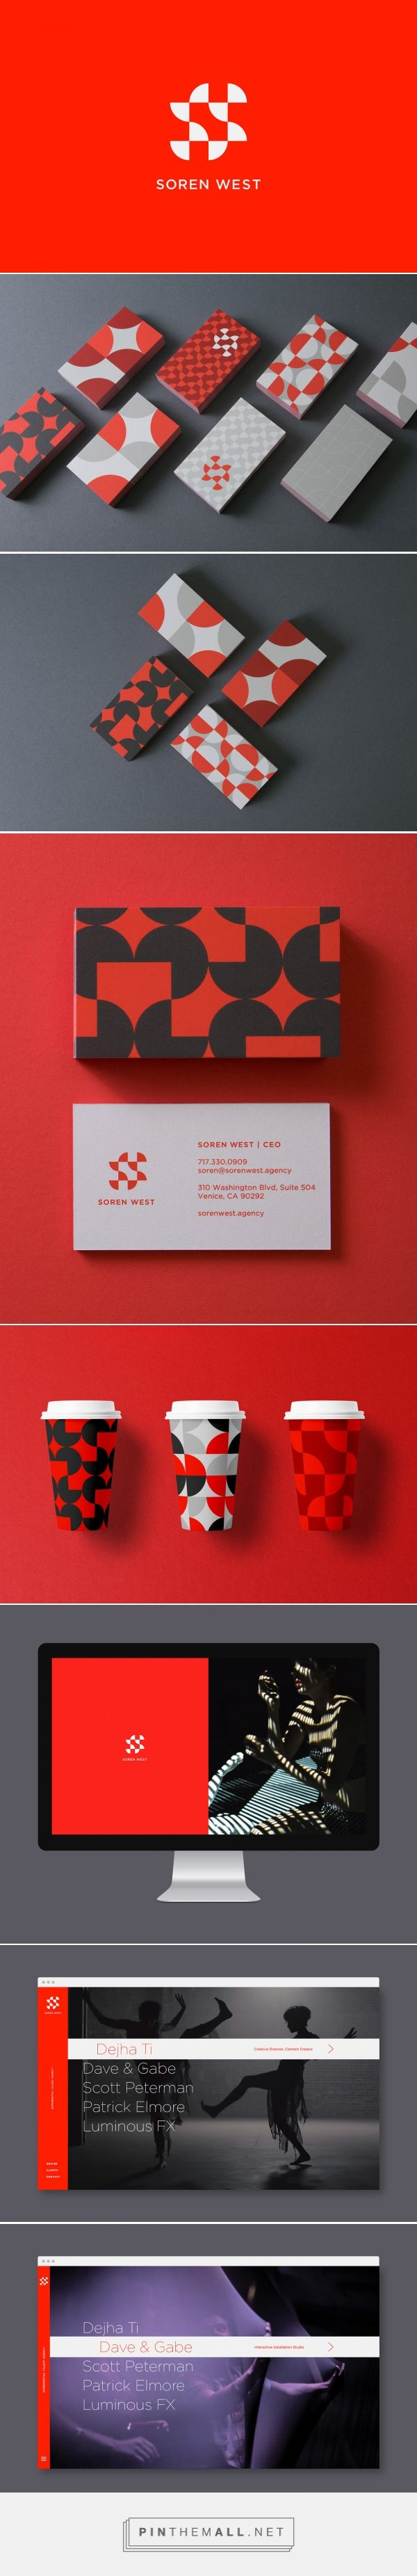 Soren West On Behance Created Via Https Pinthemall Net With Images Cosmetic Packaging Design Logo Inspiration Branding Visual Branding